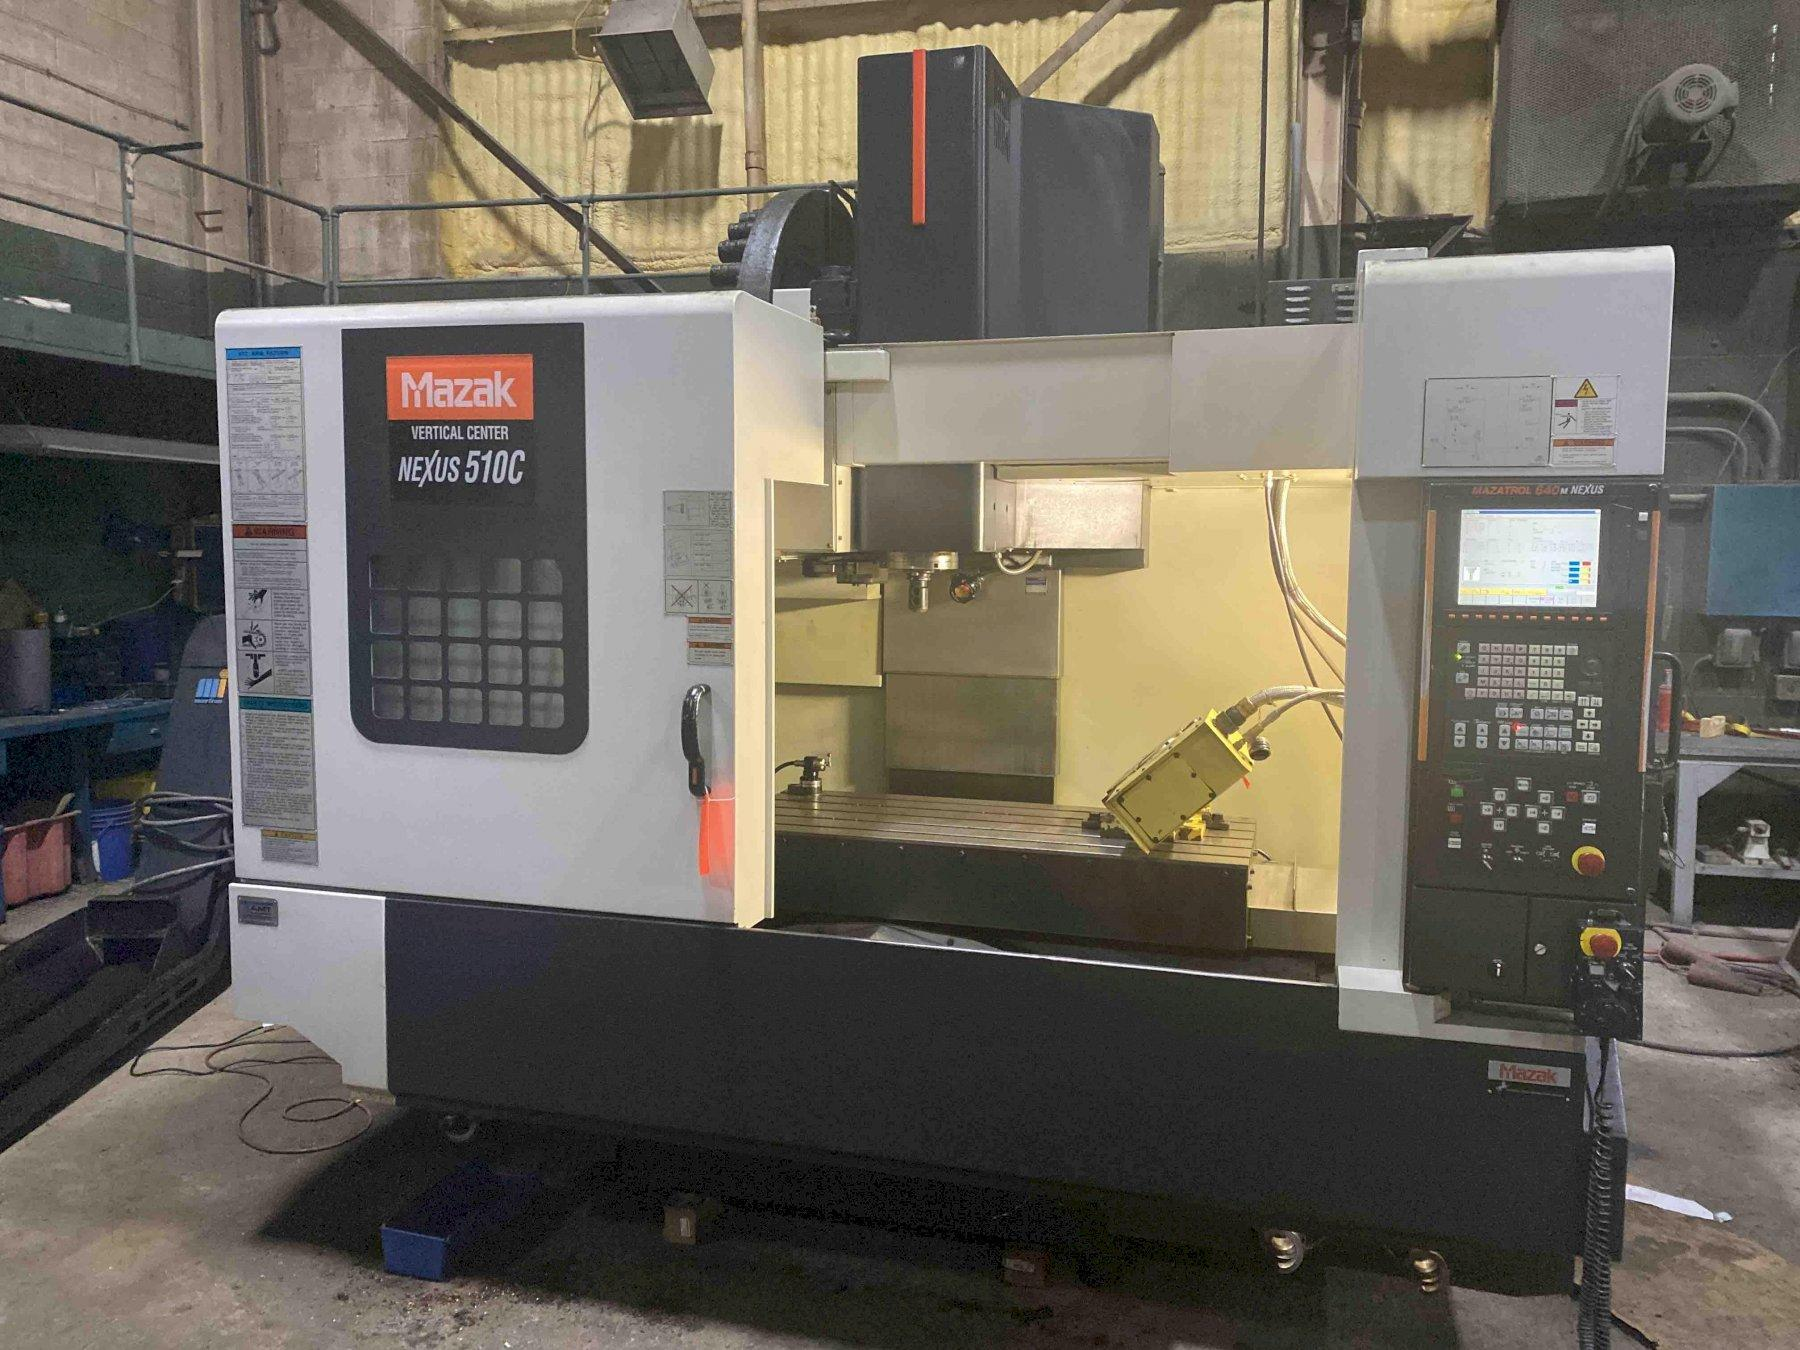 "Mazak VCN-Nexus 510C CNC Vertical Machining Center, 640M Control, 41""/20""/20"" Travels, 12K Spindle, CT40, 30 ATC, 30 HP, Nikken NST250MS 4th/5th Table, CTS, ATLM, Probe, 2005"